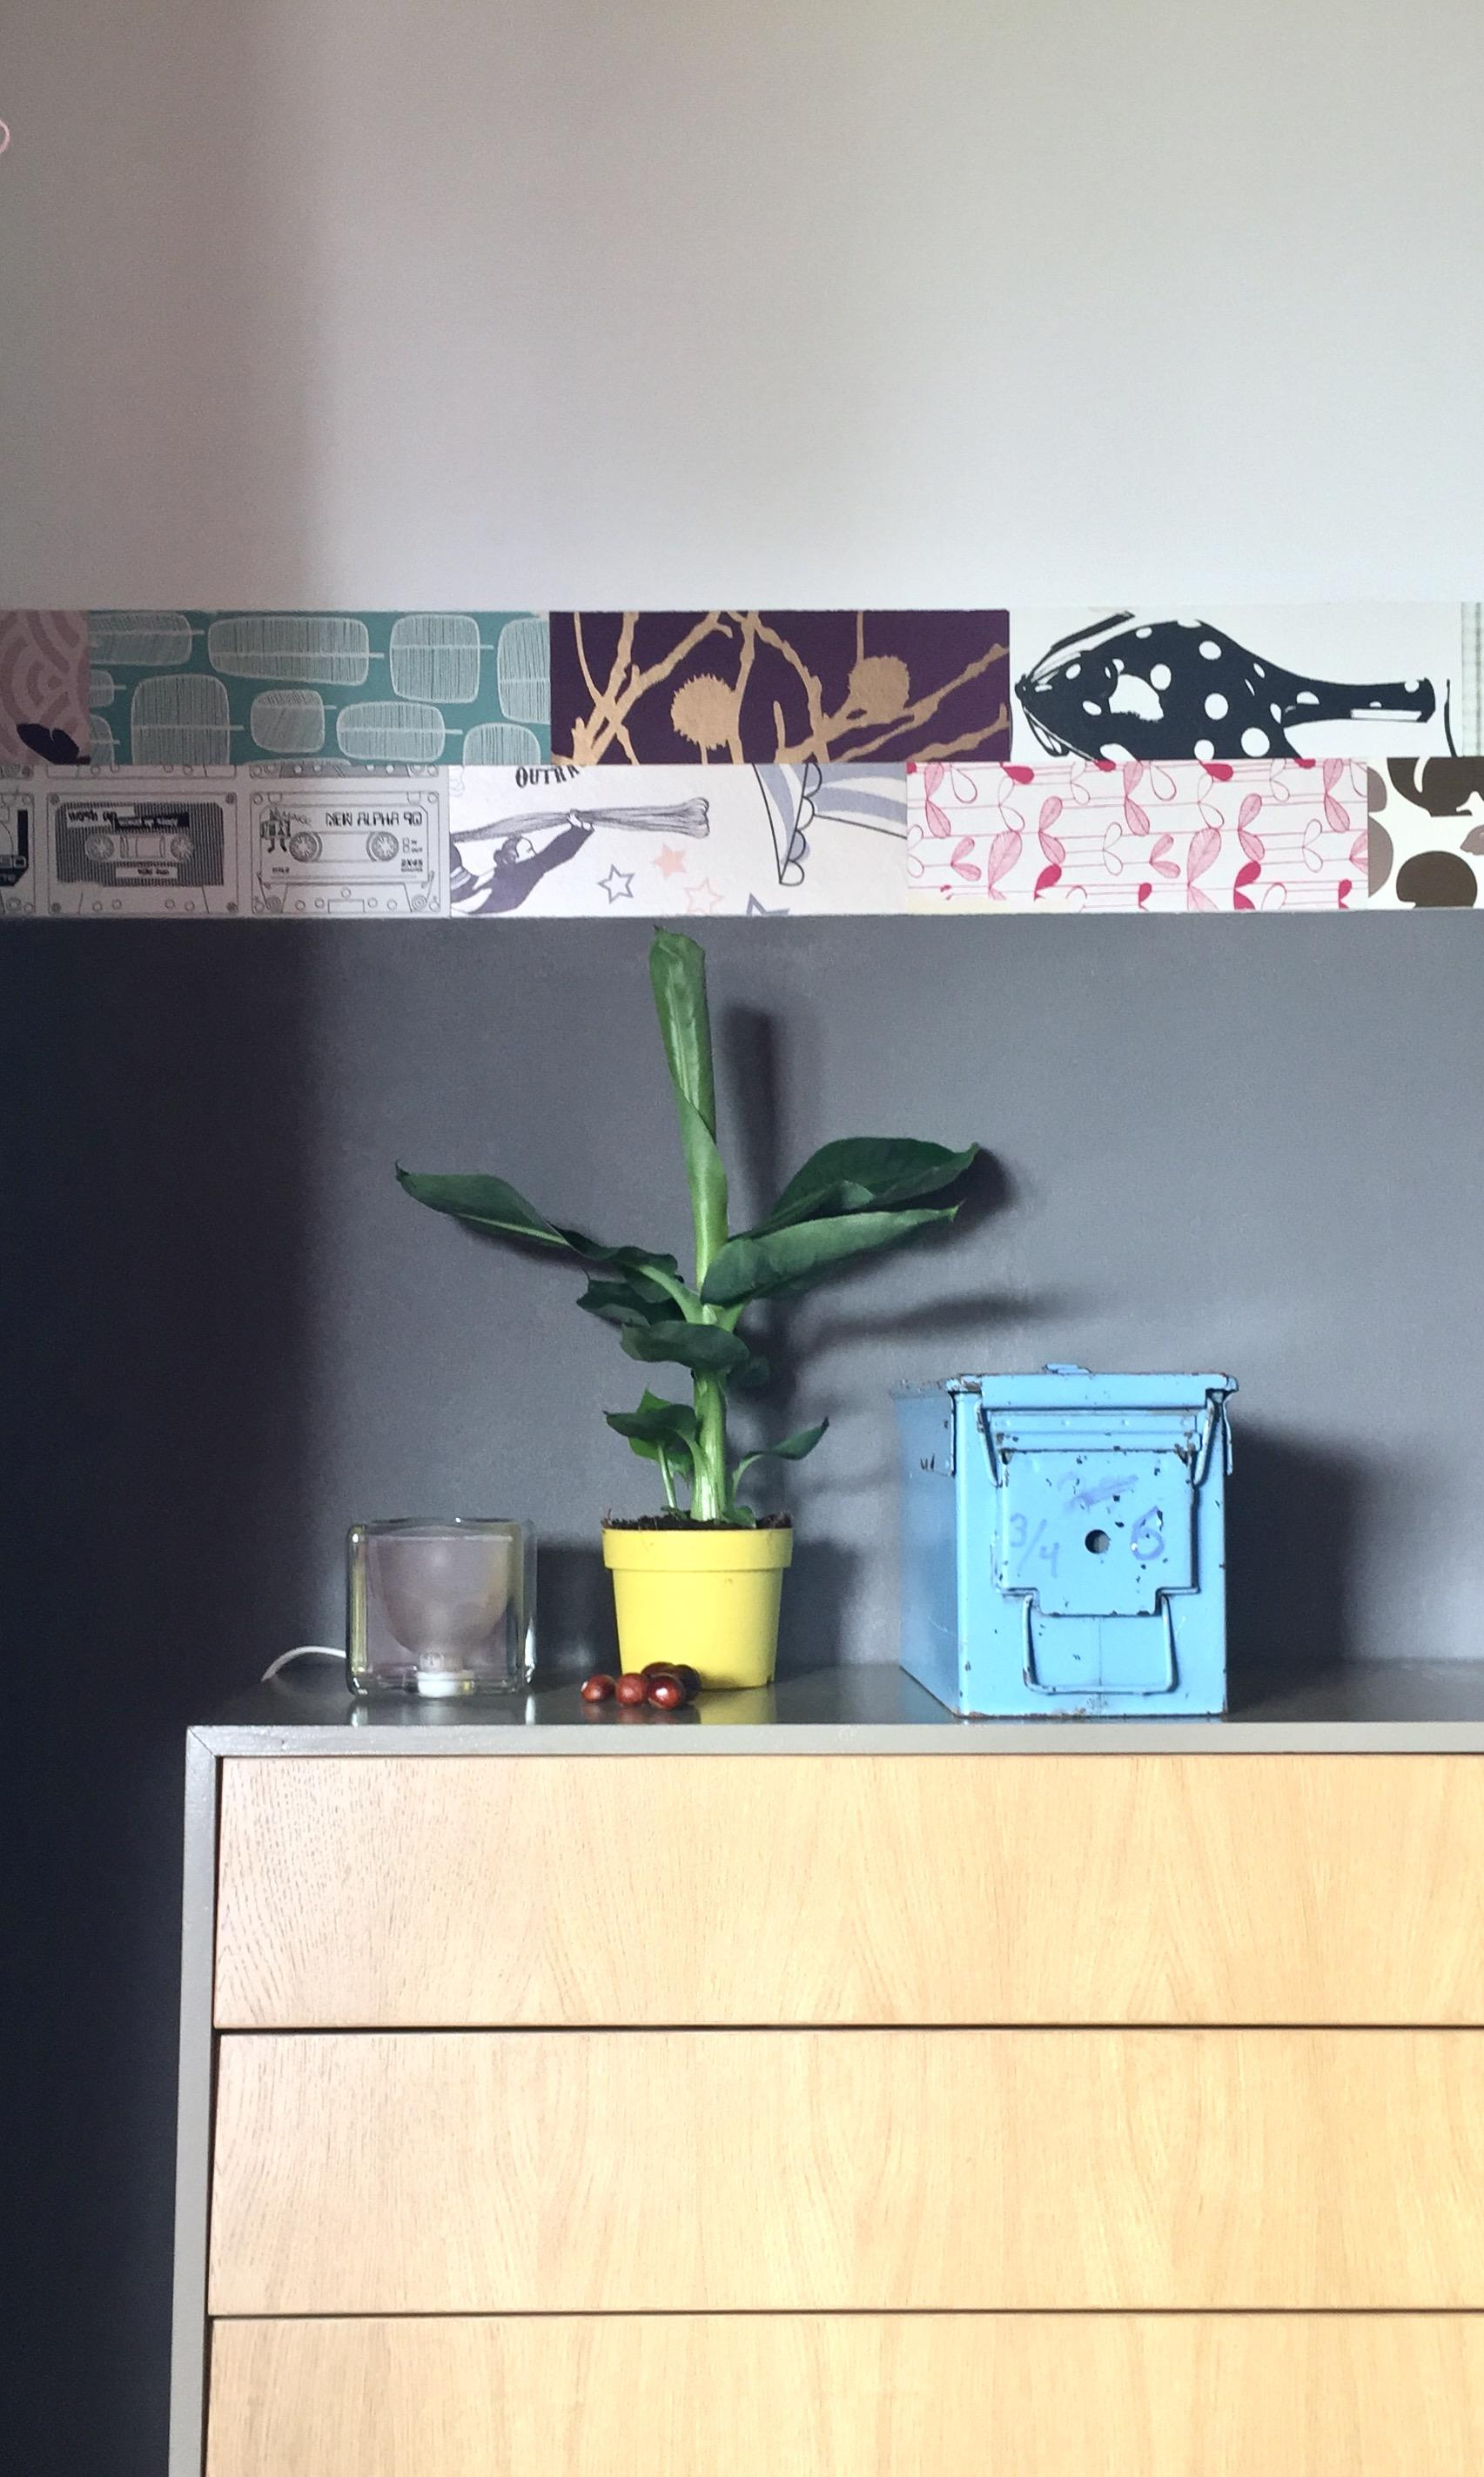 I love M E T A L L